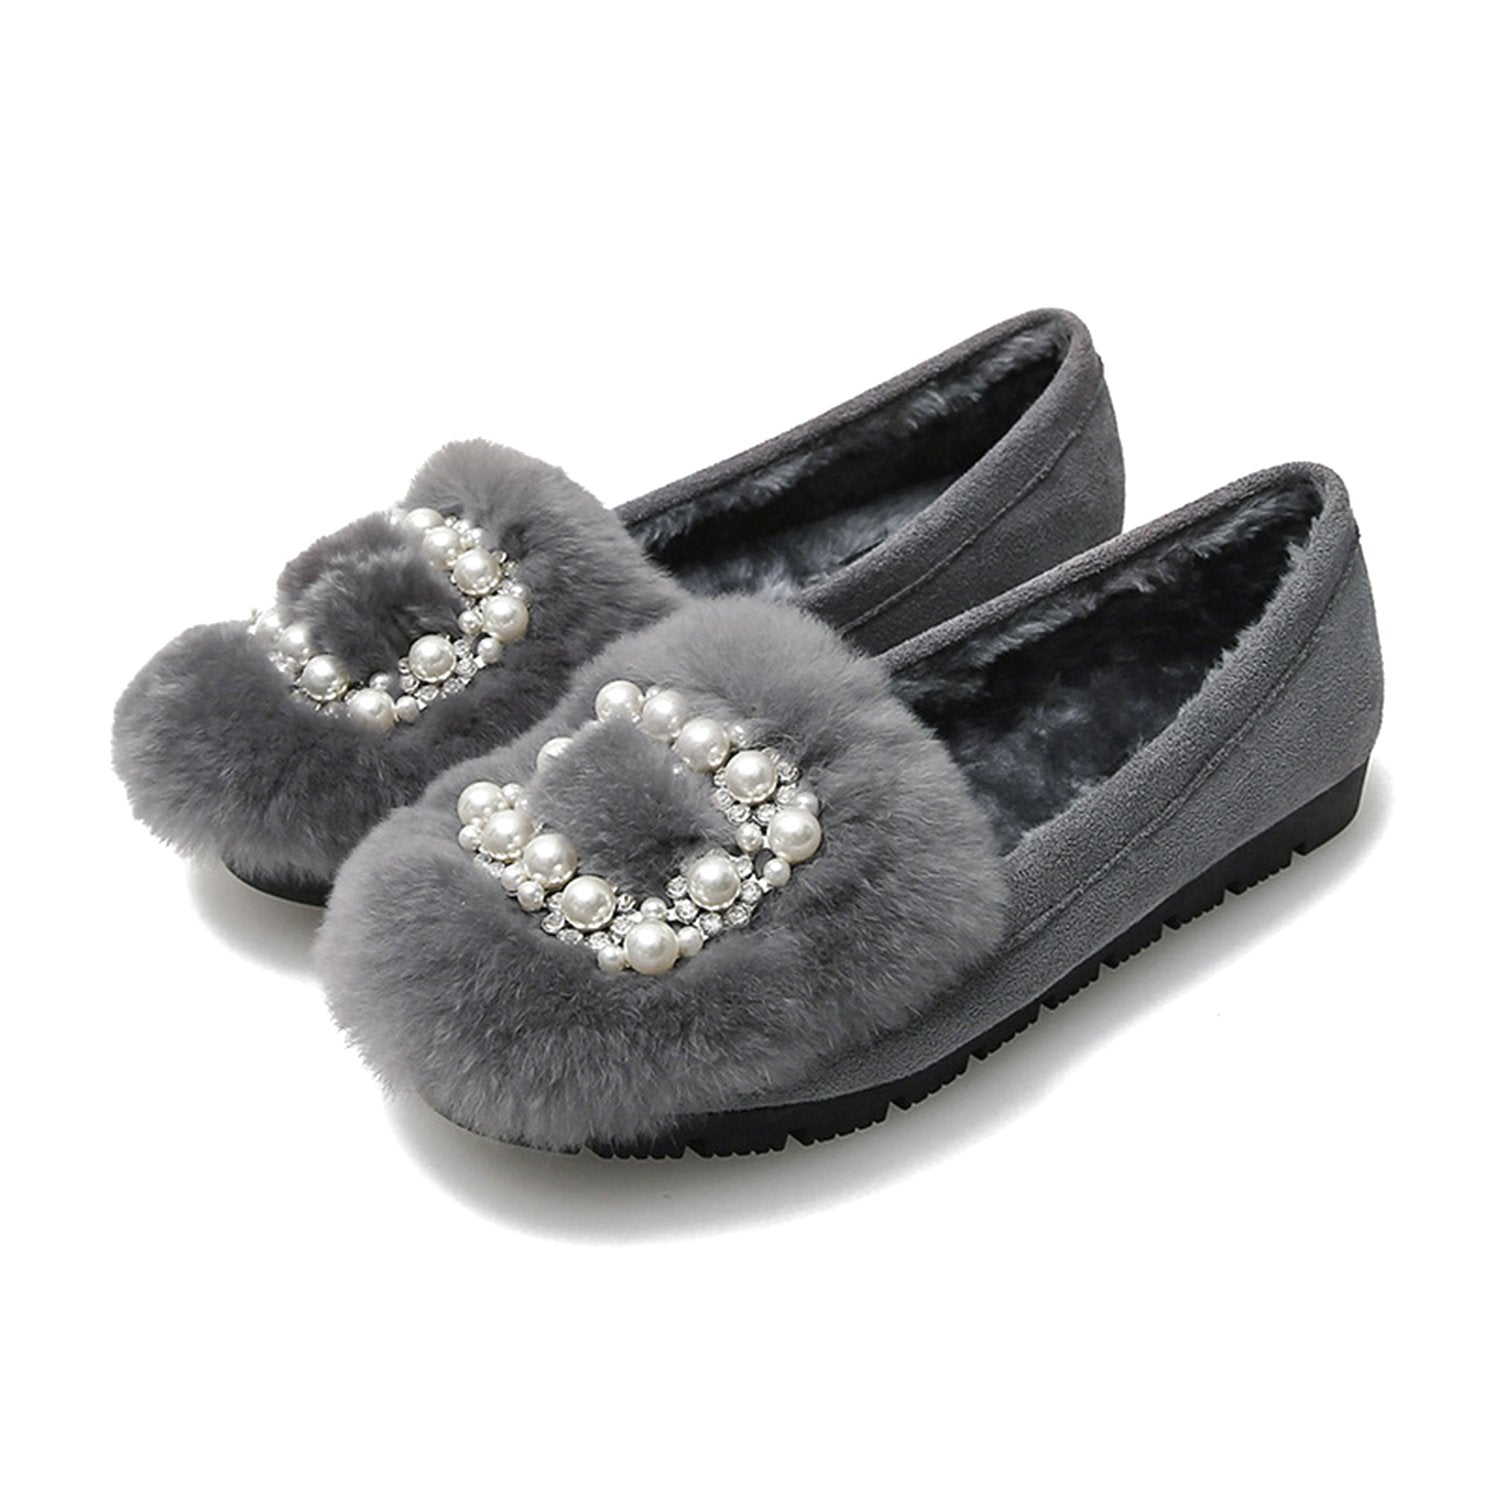 Square Buckle Fur Peas Shoes